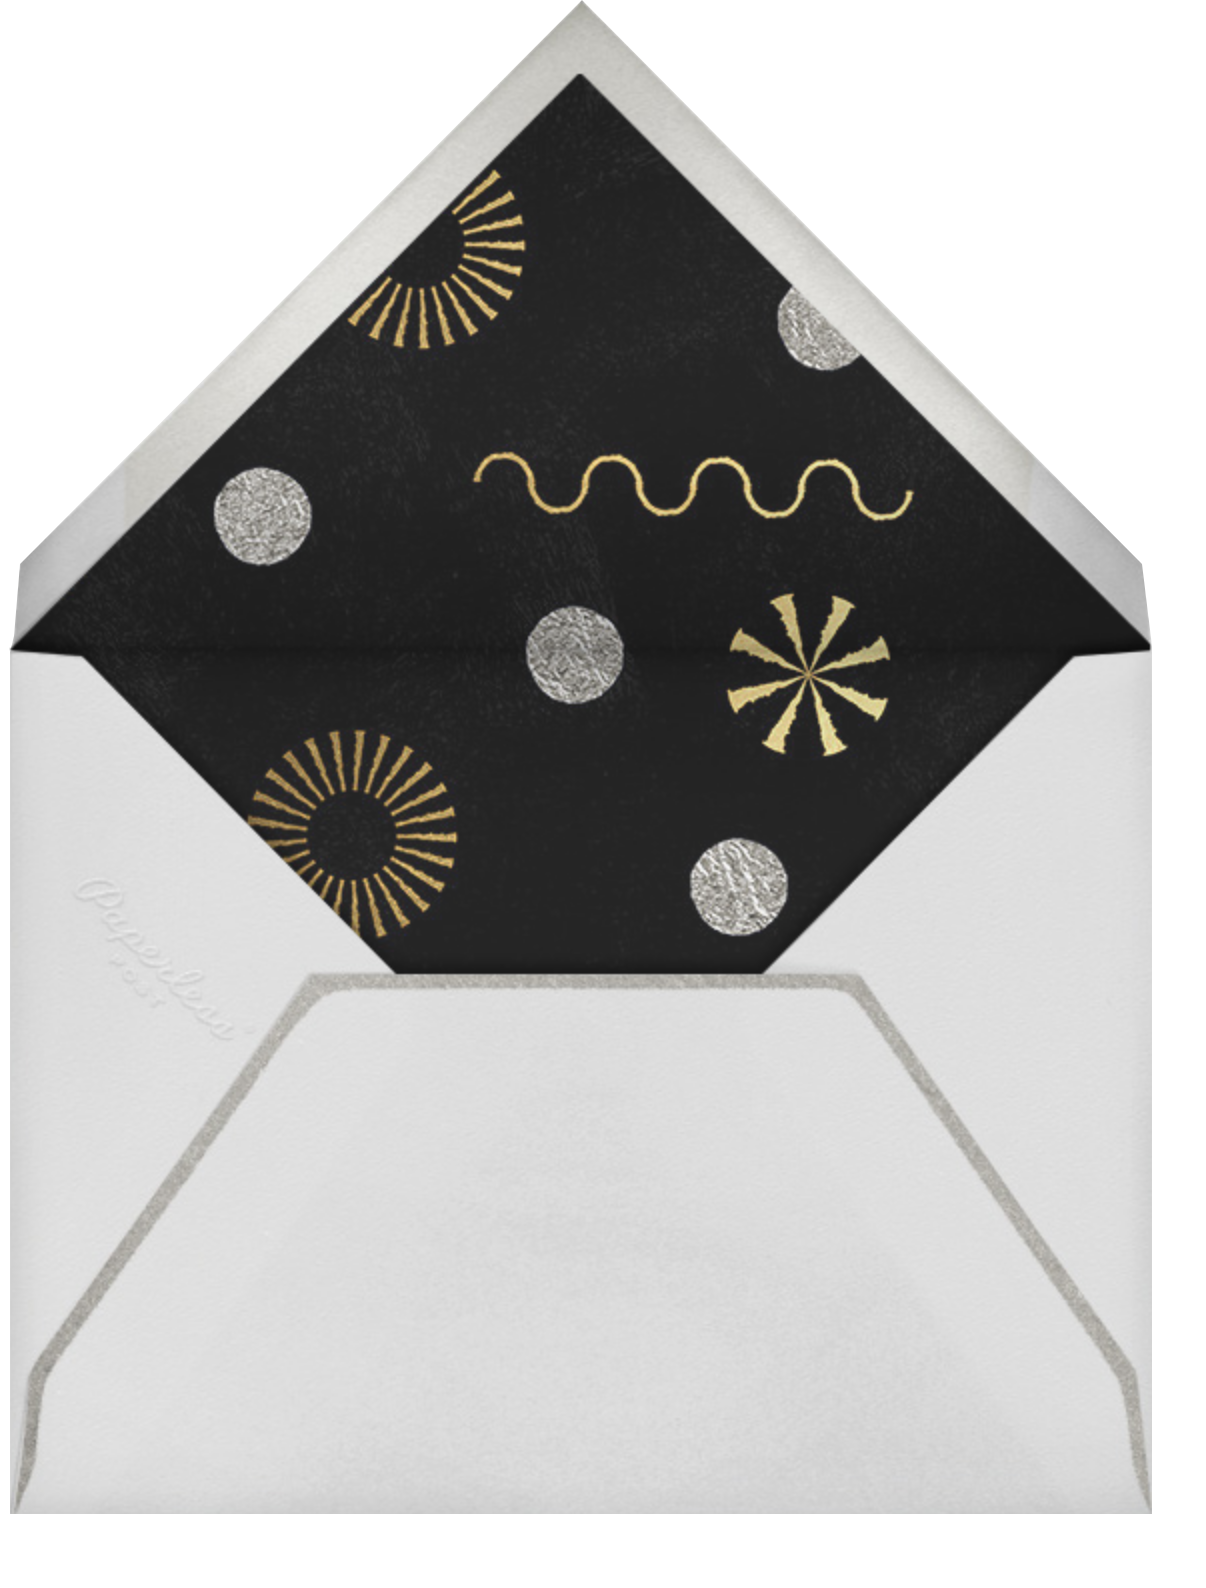 Deco New Year's - Paperless Post - Envelope